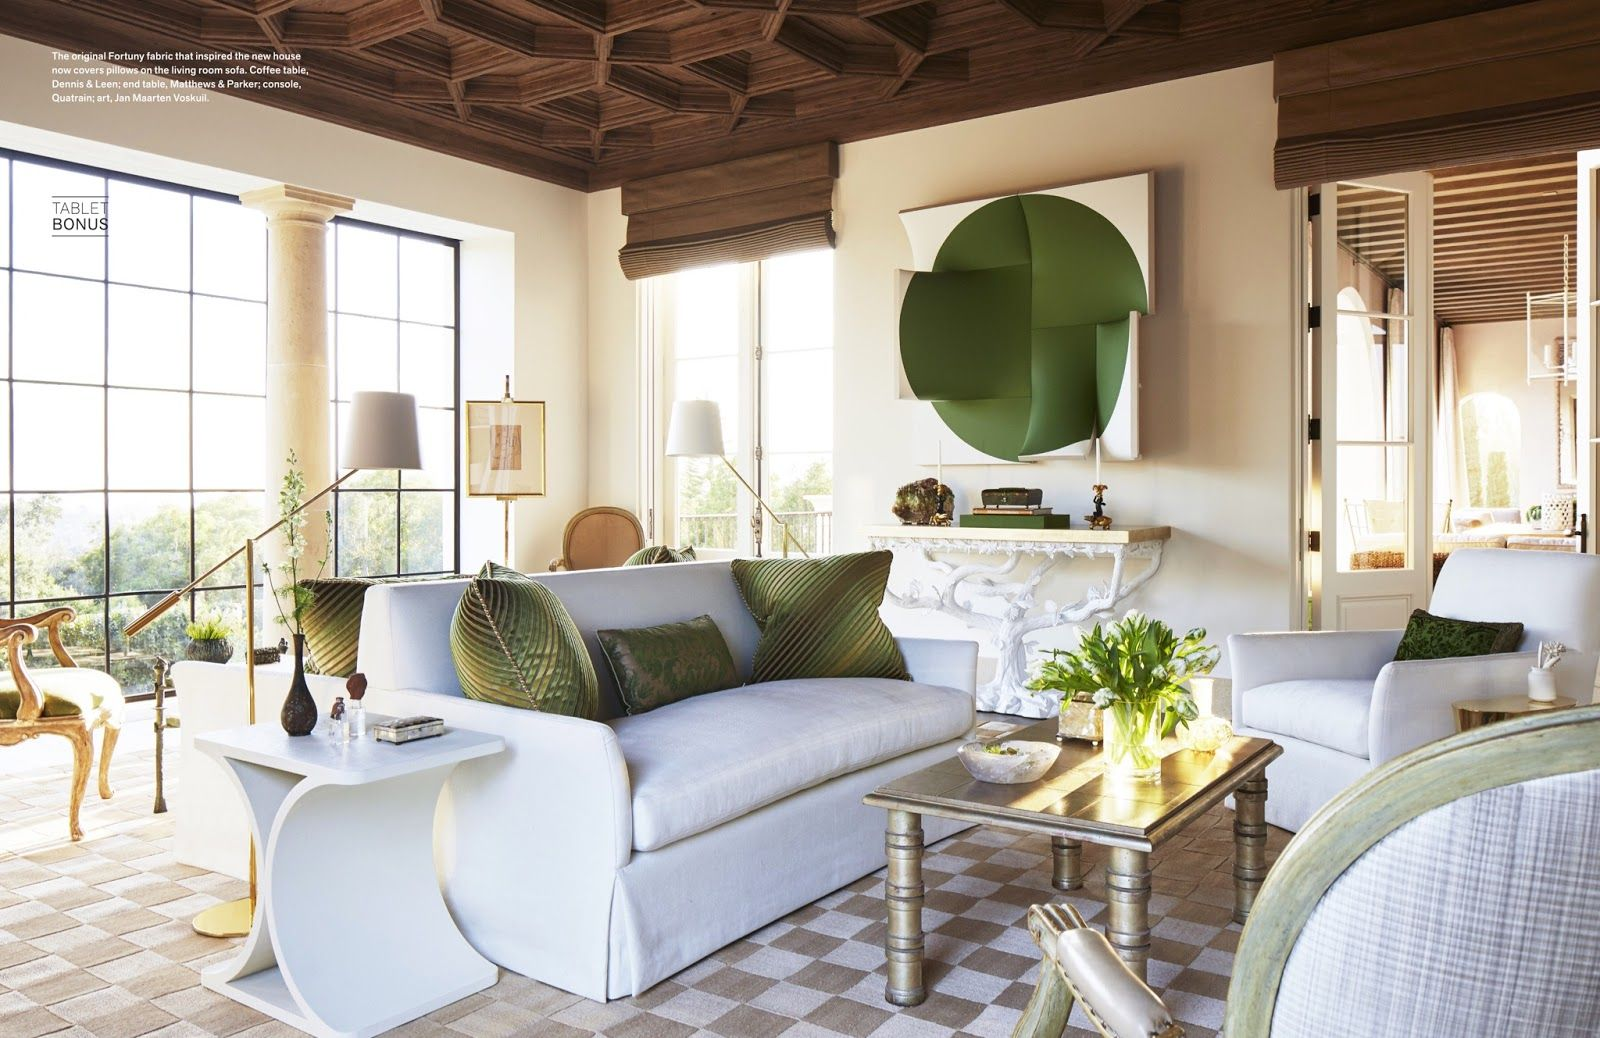 luxurious and splendid better homes and gardens publications. As promised I am sharing the entire home that Richard Hallberg designed  have always been a huge fan of s work This fo Splendid Sass RICHARD HALLBERG DESIGN IN MONTECITO